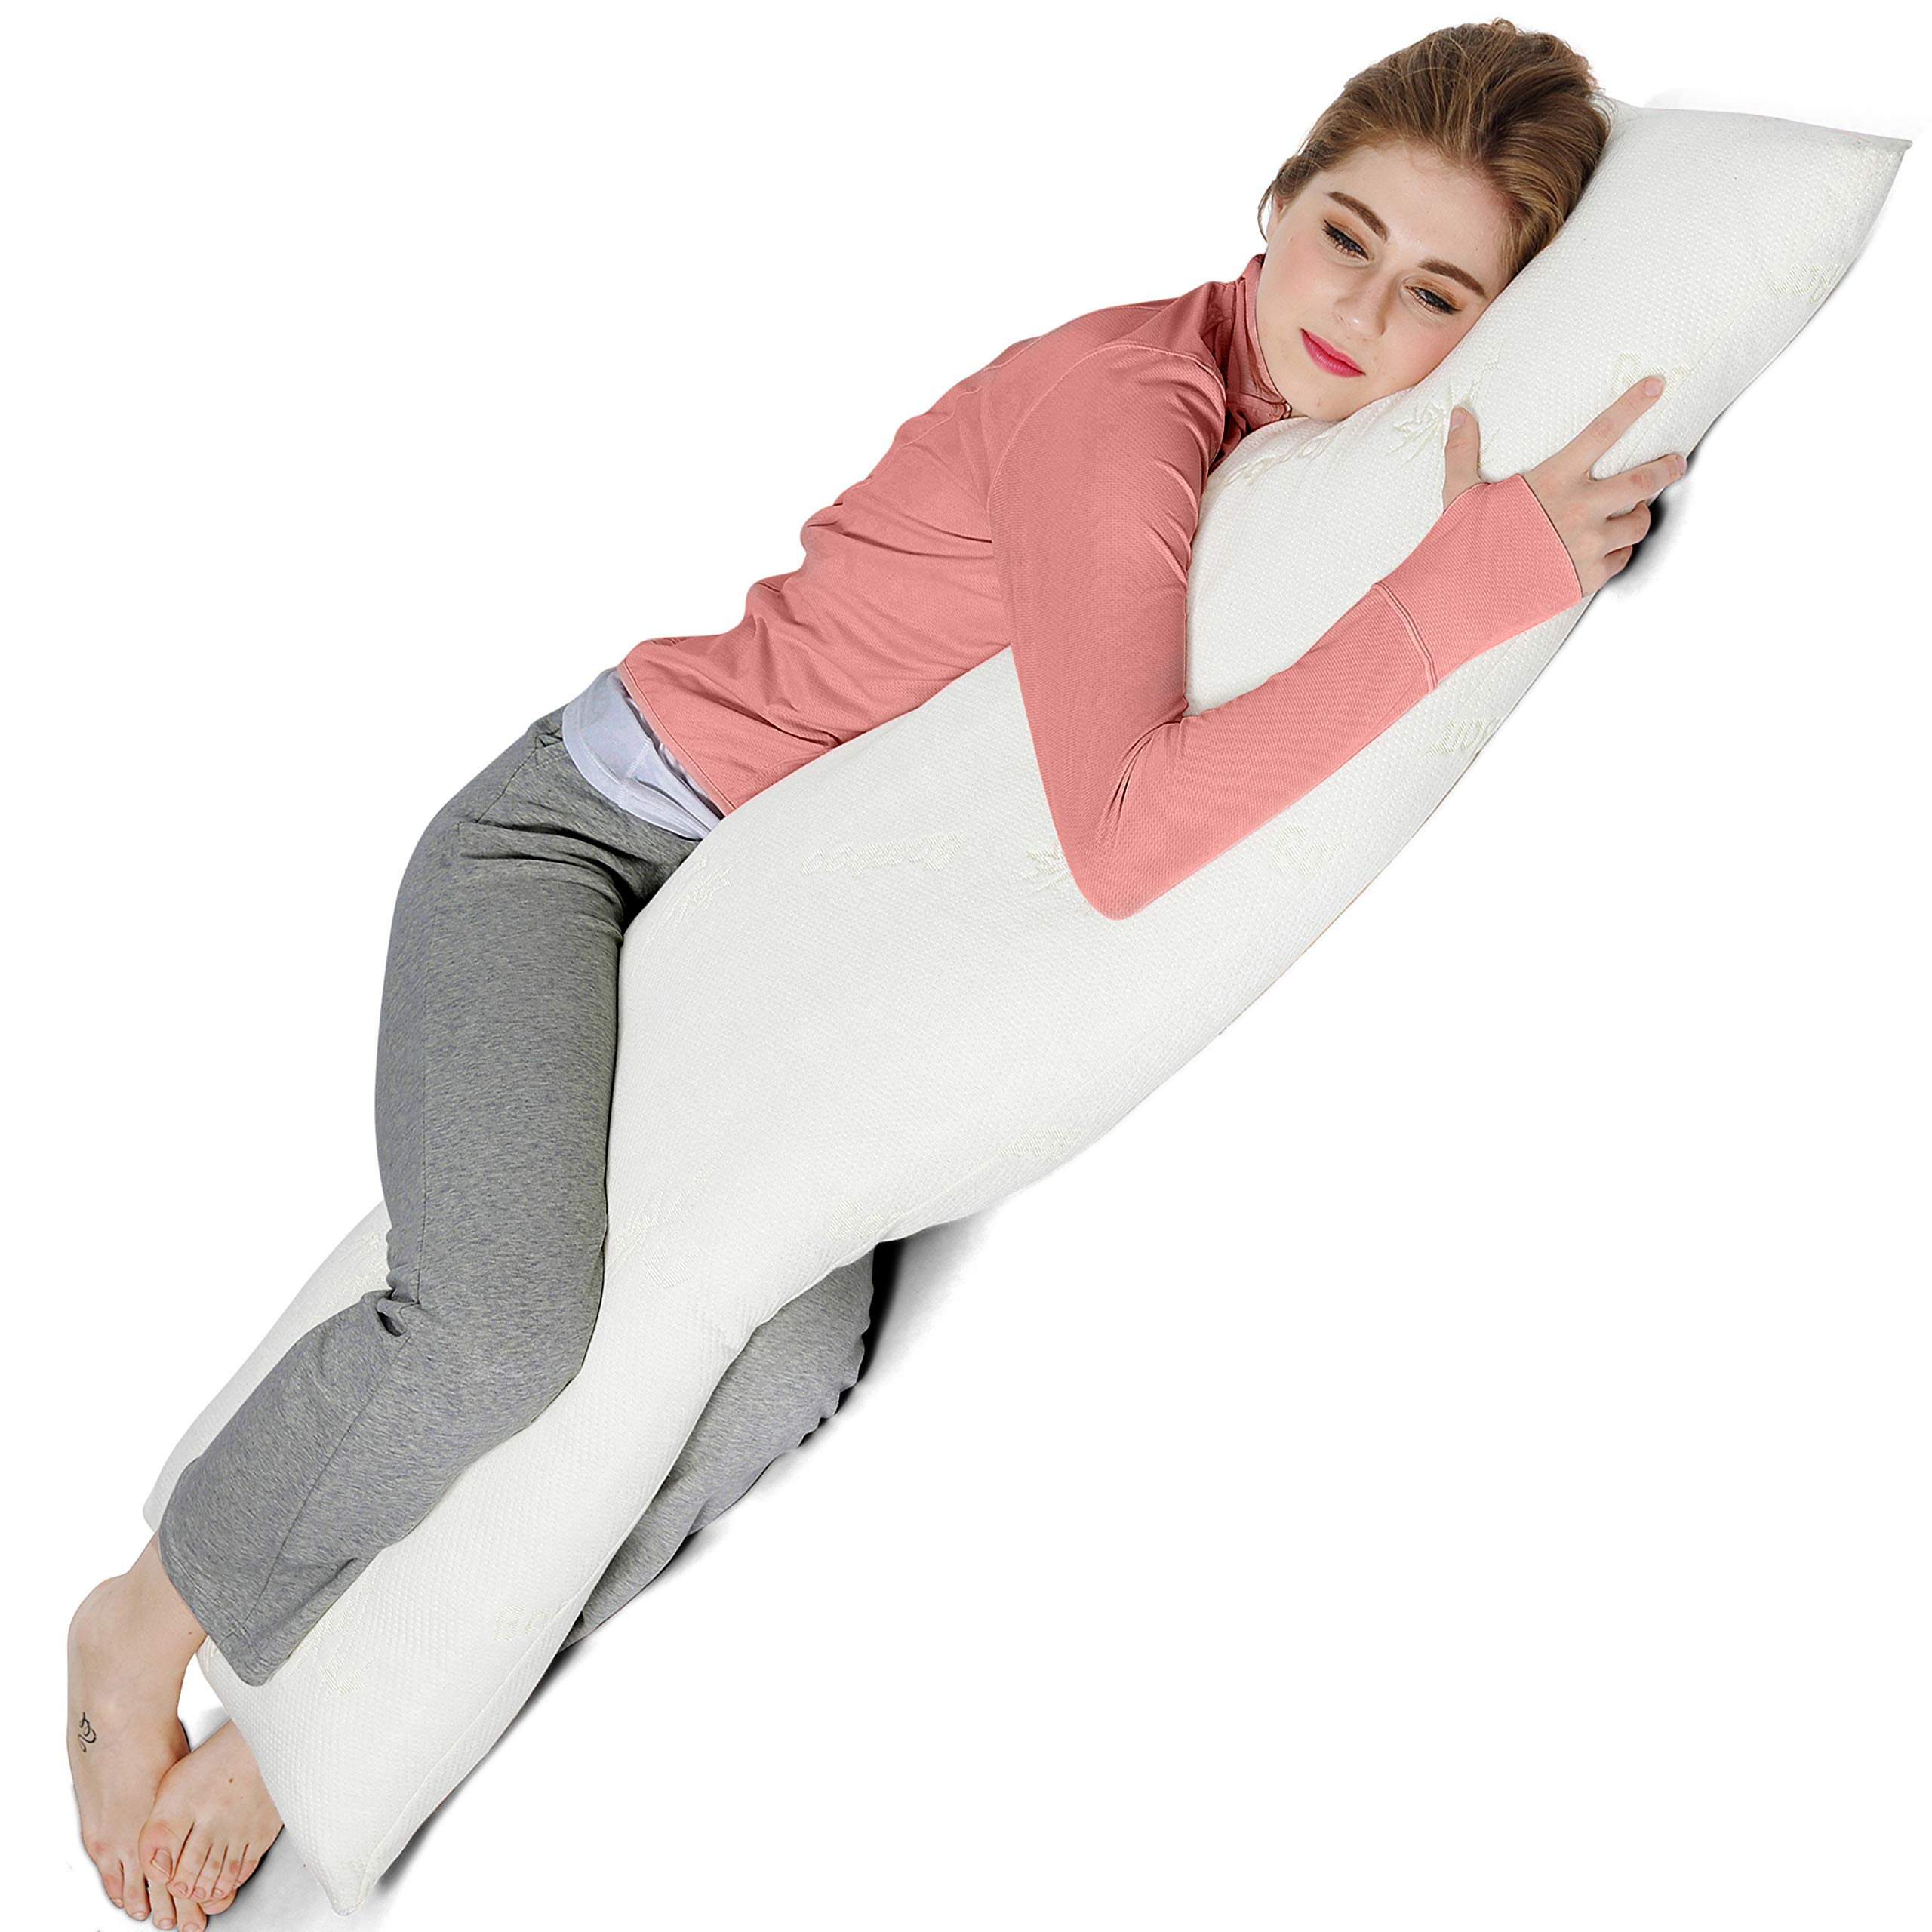 AmazingDreams Full Body Pillow - Side Sleeper Pillow and Pregnancy Pillow with Washable Bamboo Cover by Amazing Dreams (Image #3)